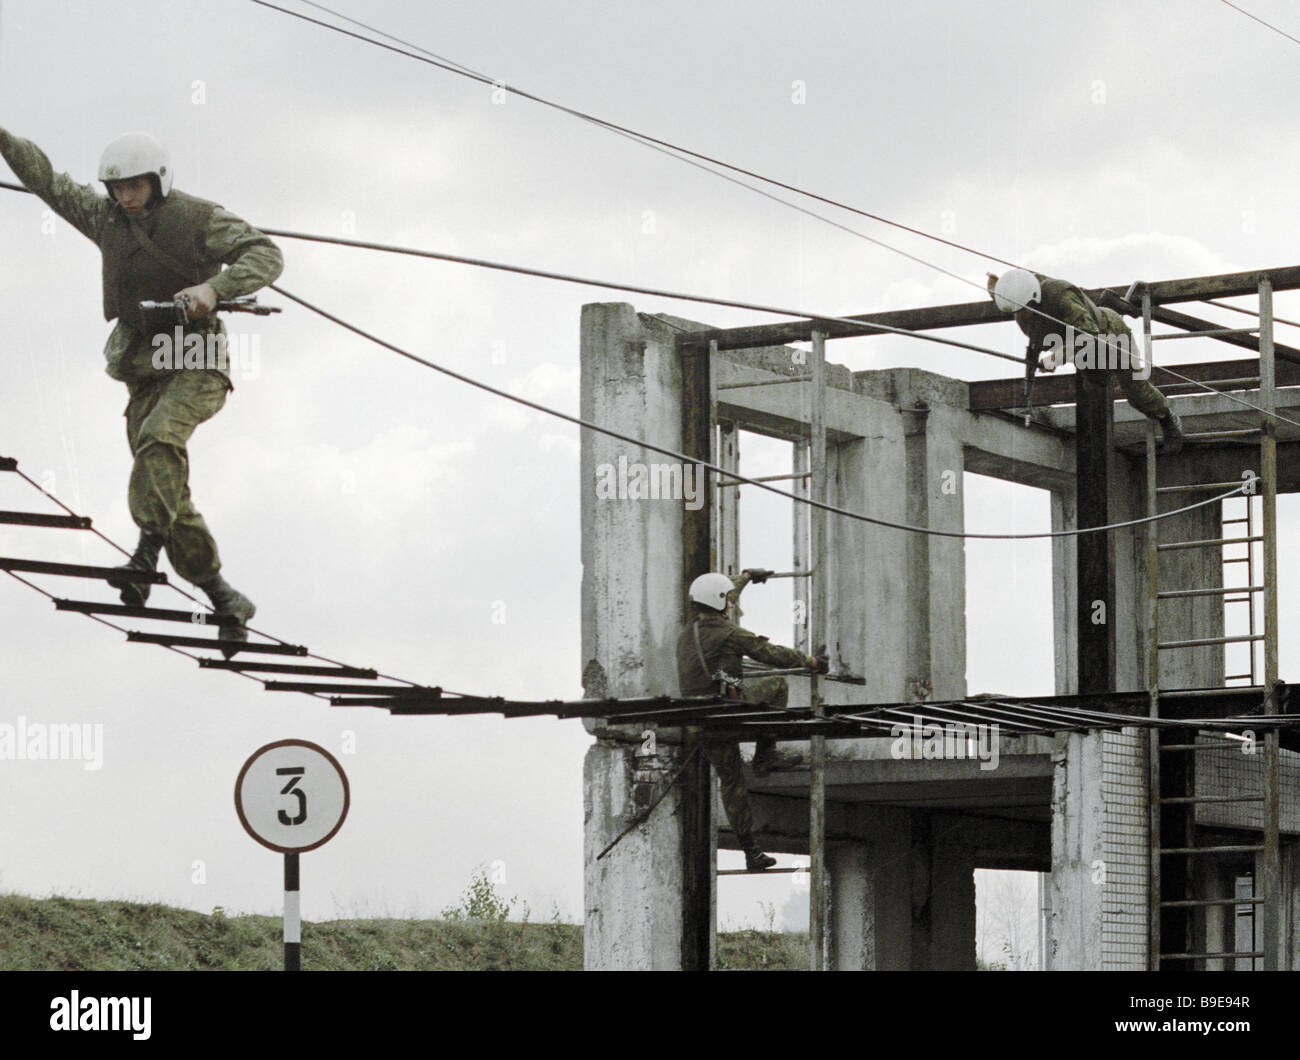 Soldiers Training Obstacle Stock Photos & Soldiers Training Obstacle ...